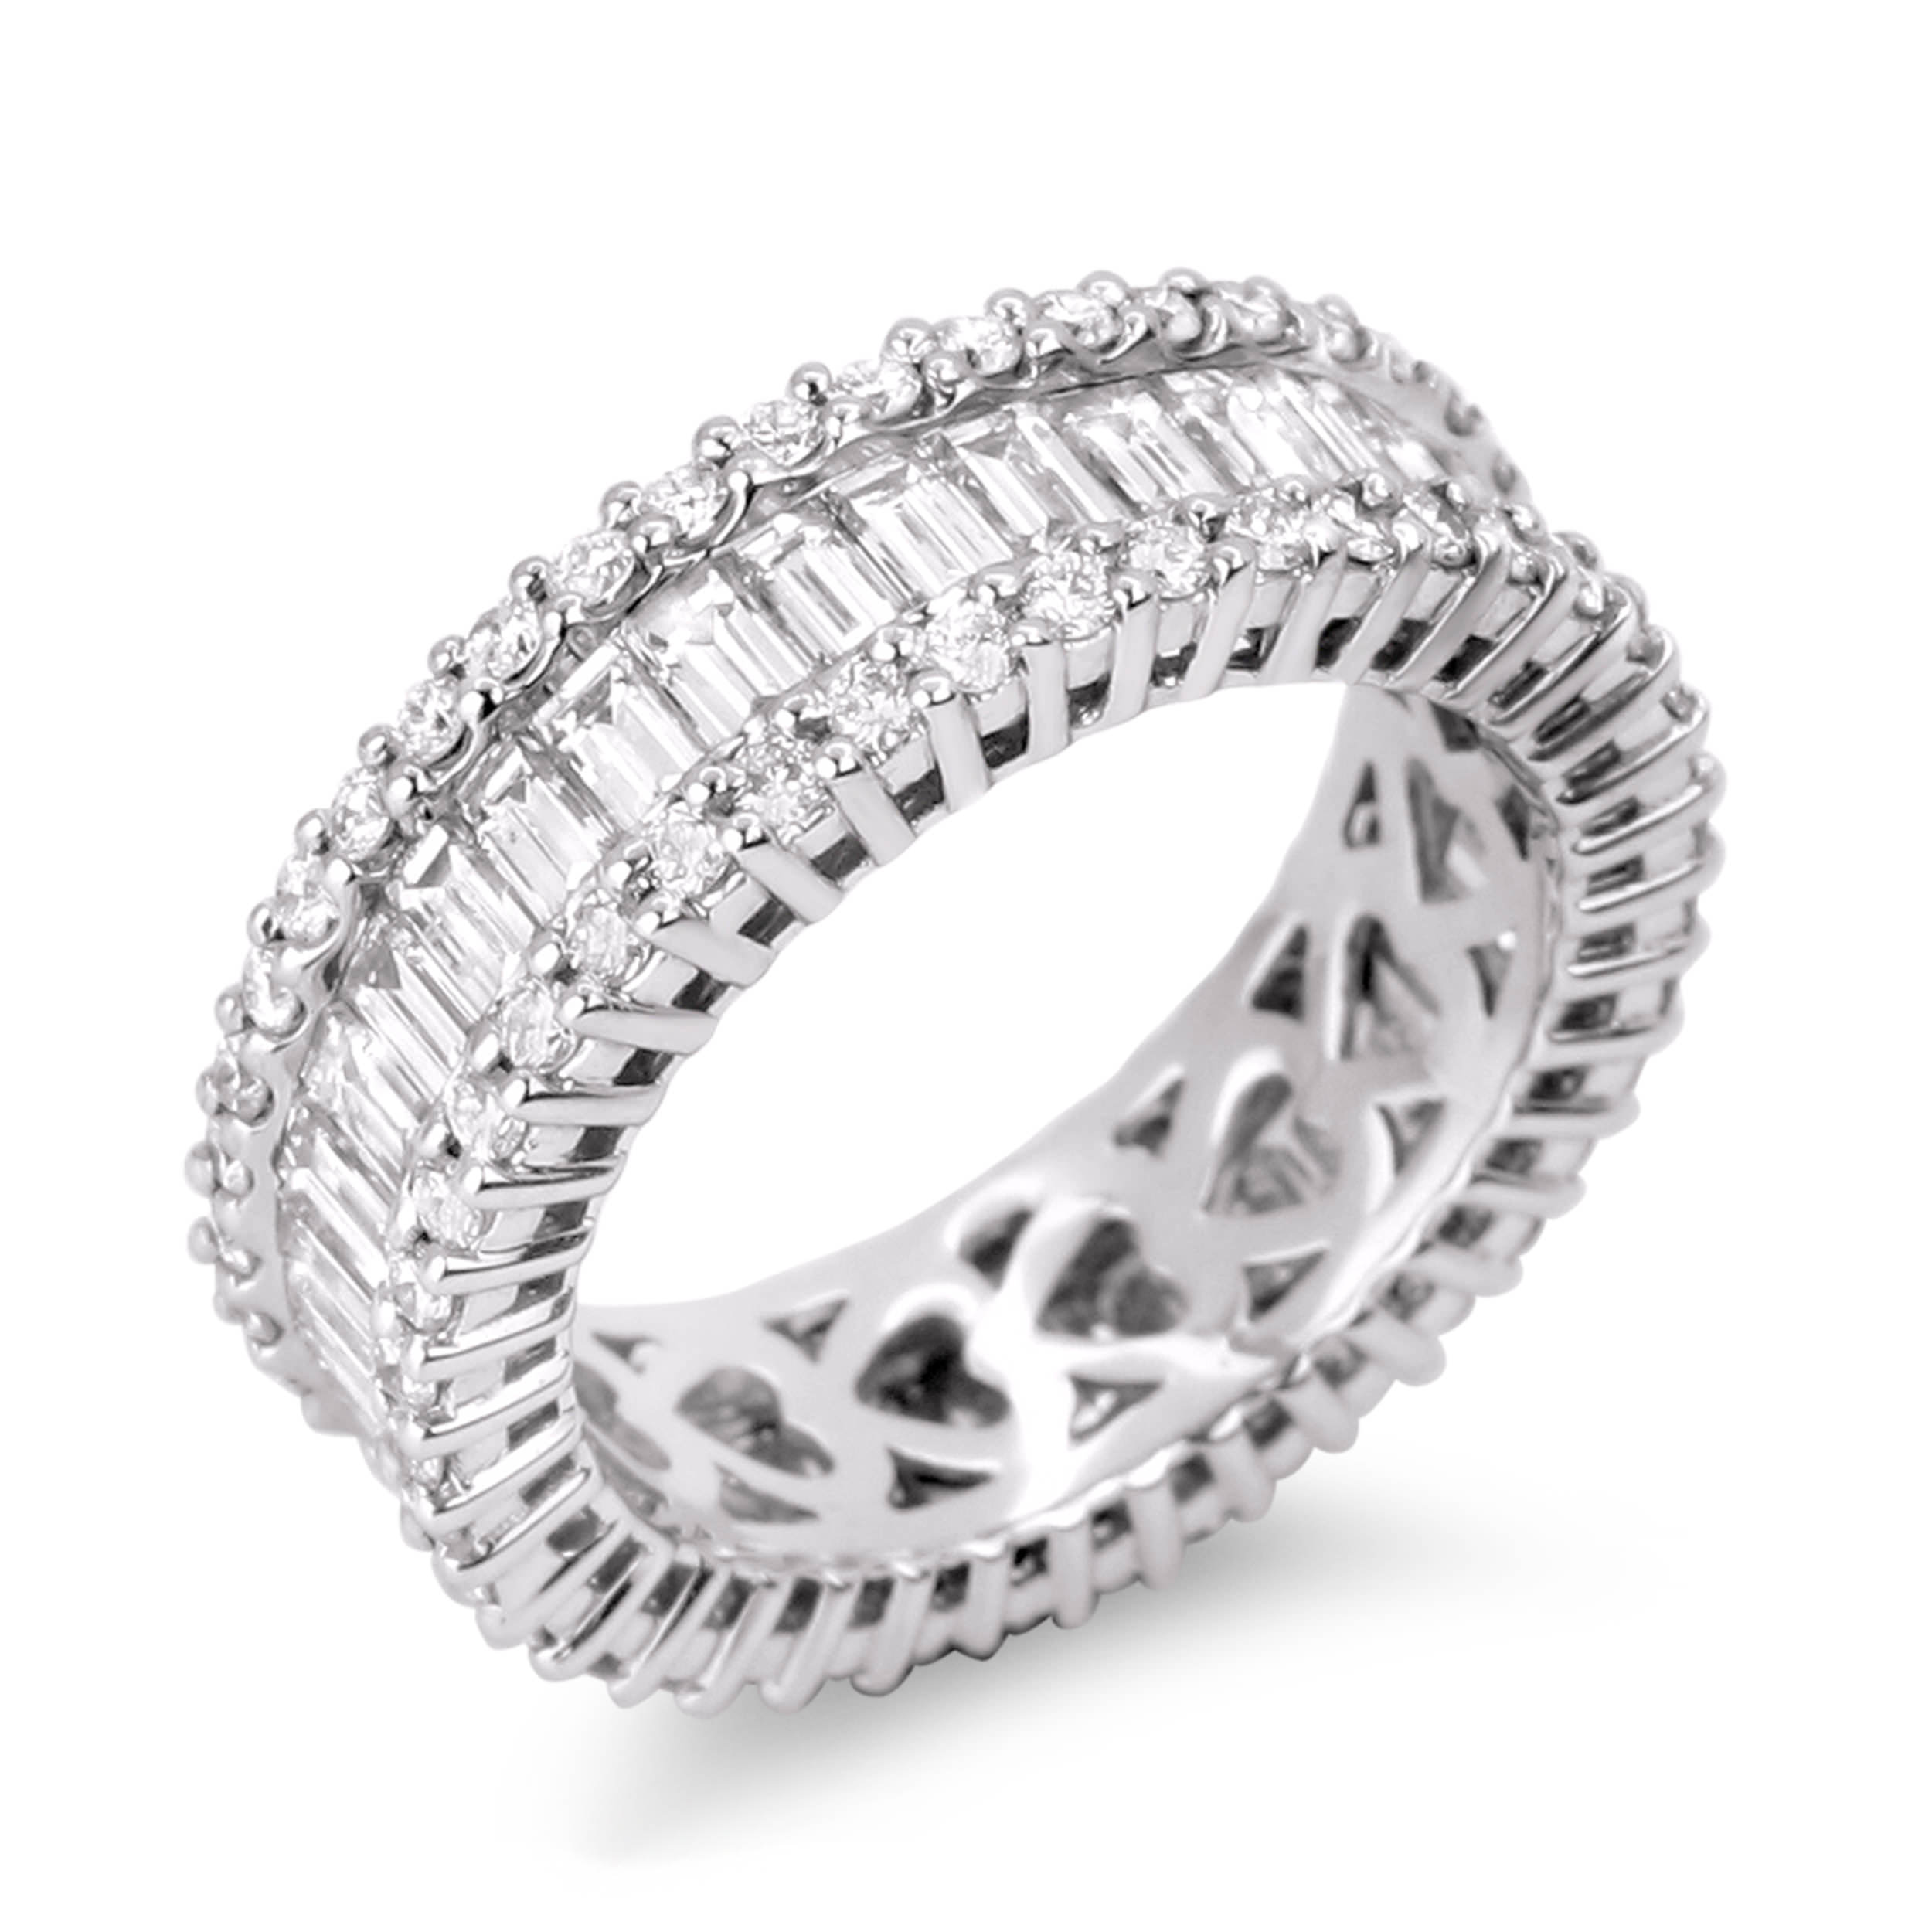 pretty unique rings jewellery diamond anniversary wedding for zales costco womens bands women